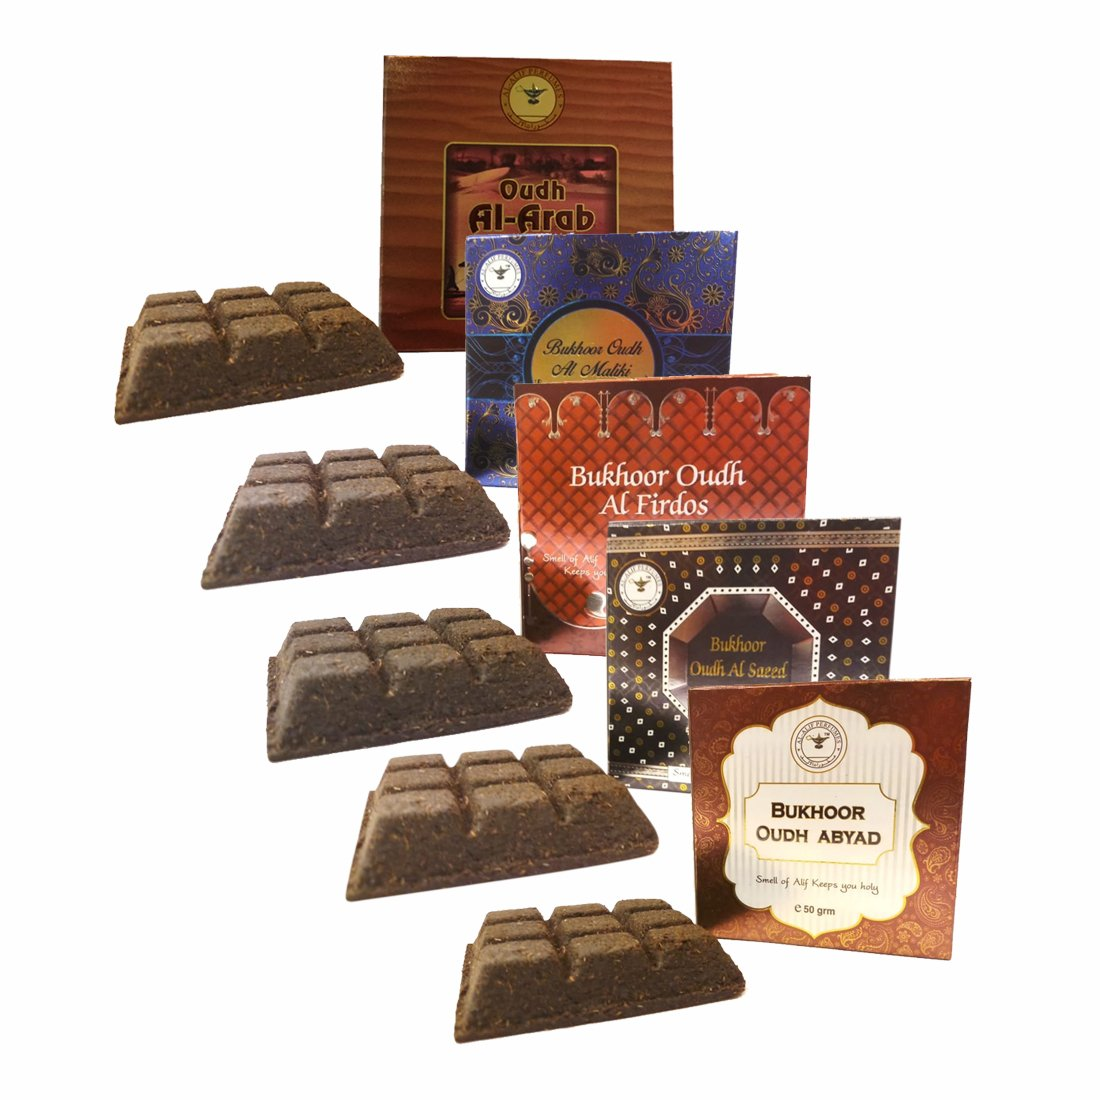 Alif Bukhoor Oudh Abyad, Al Firdous, Al Saeed, Al Maliki & Al Arab Incense Home Fragrance Pack Of 5 x 50g